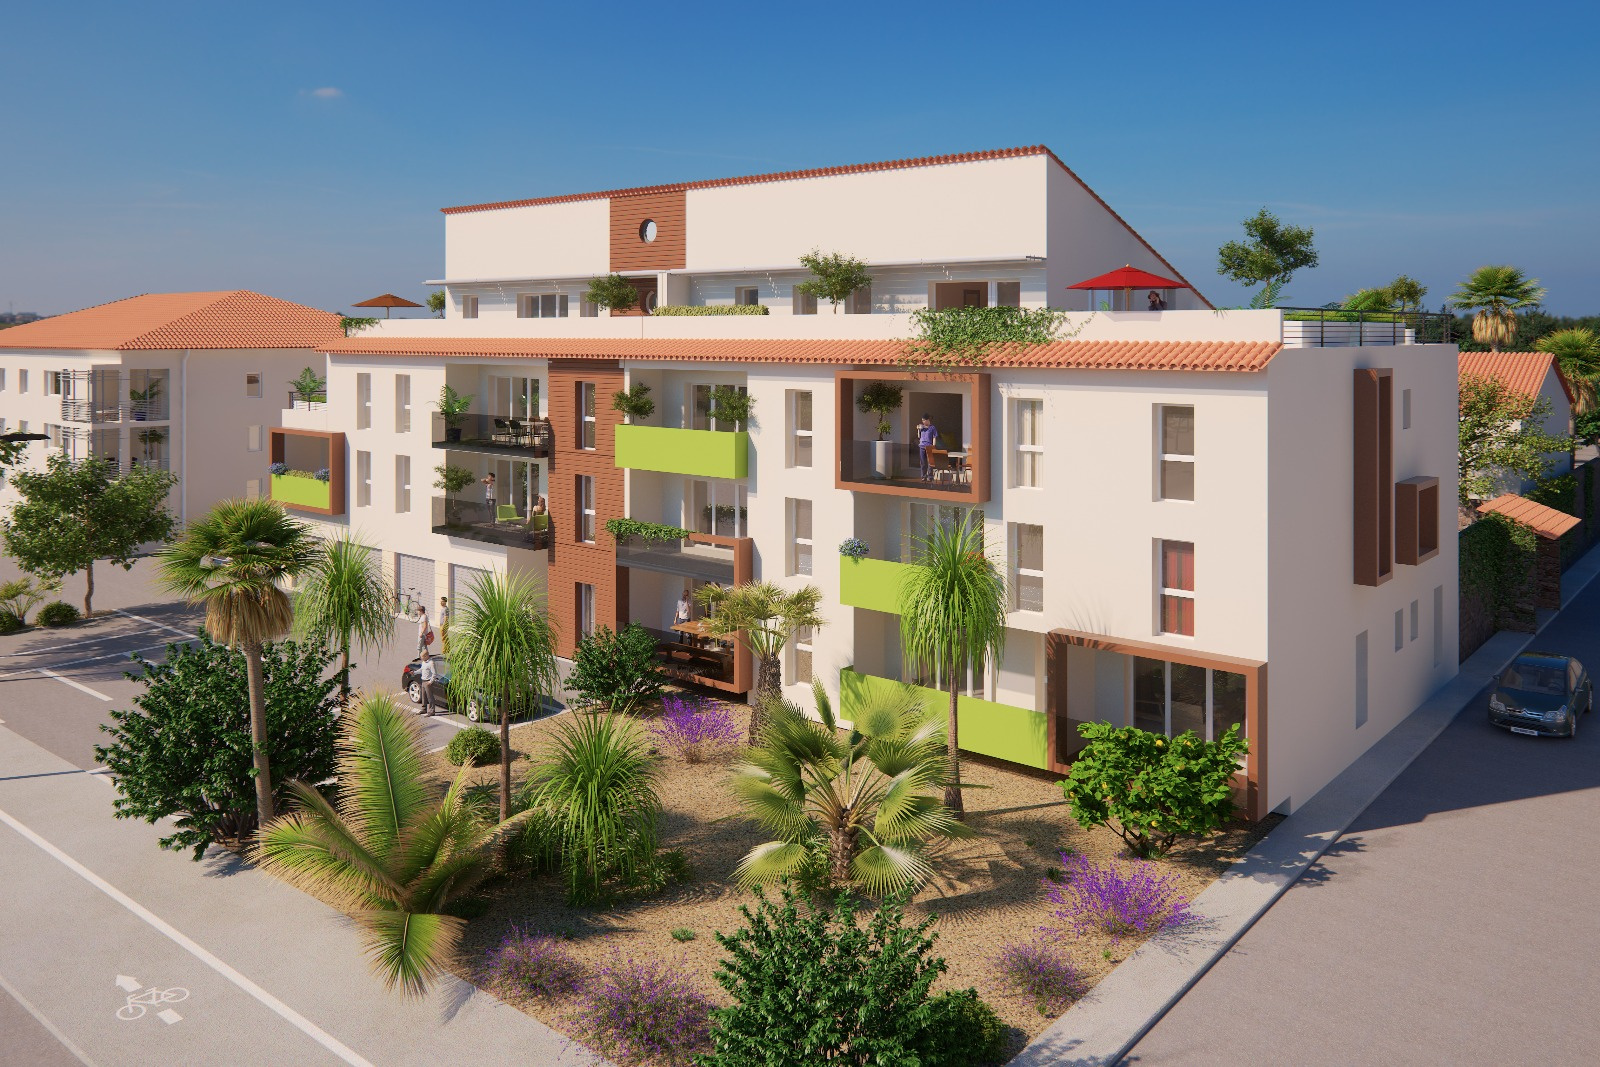 Annonce immobiliere immobilier entre particuliers site for Annonce immobiliere appartement